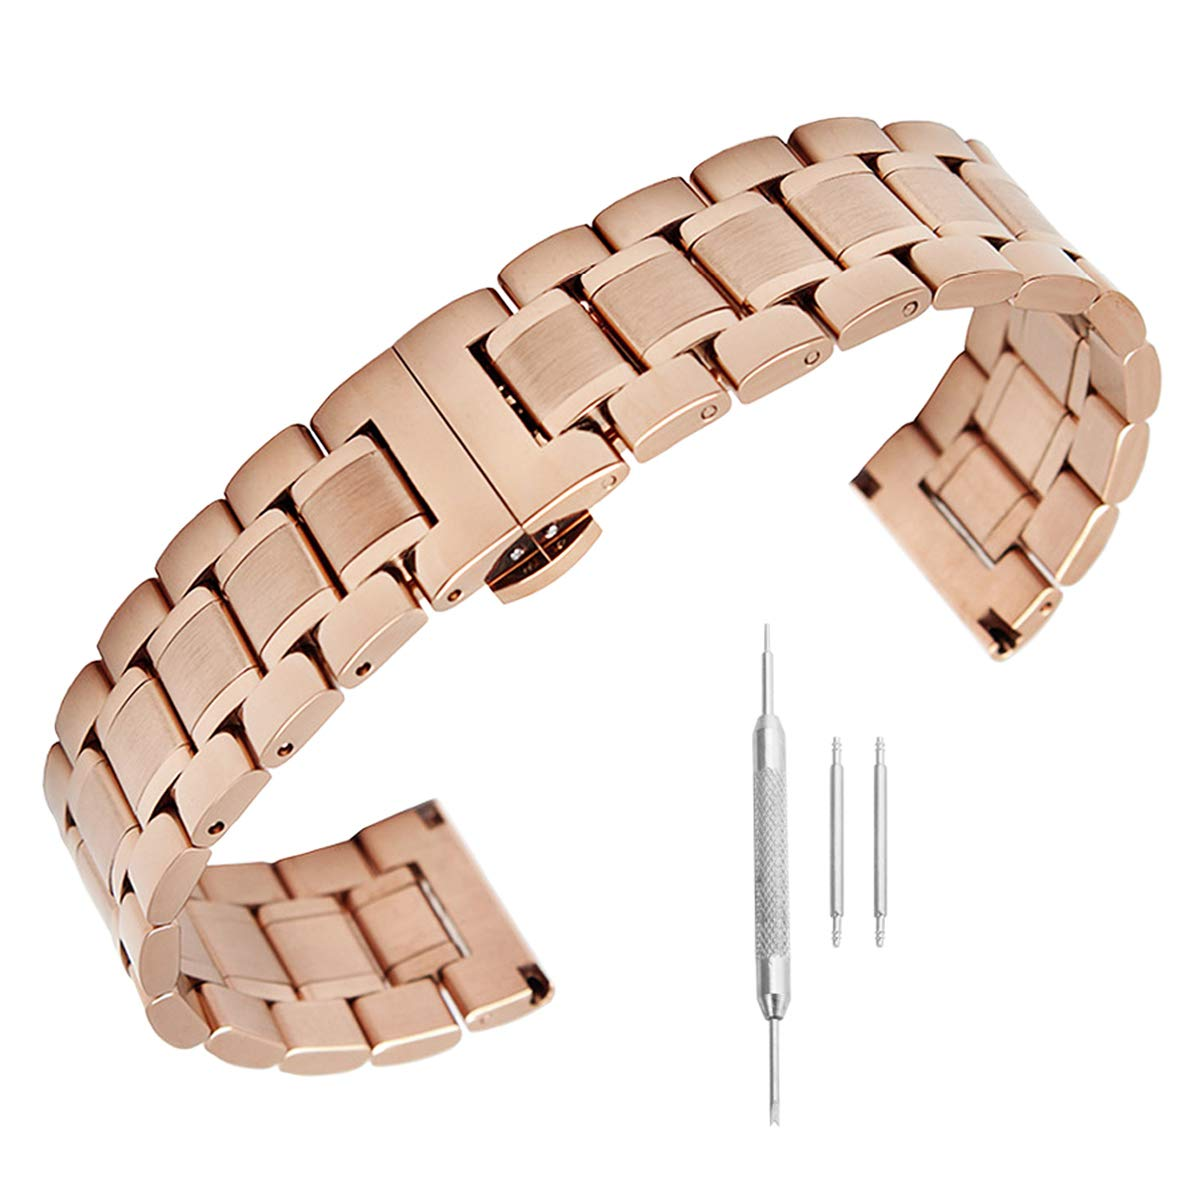 14mm 16mm 17mm 18mm 19mm 21mm 22mm 23mm 24mm Stainless Steel Watch Band Men Wrist Premium Strap Rose Gold